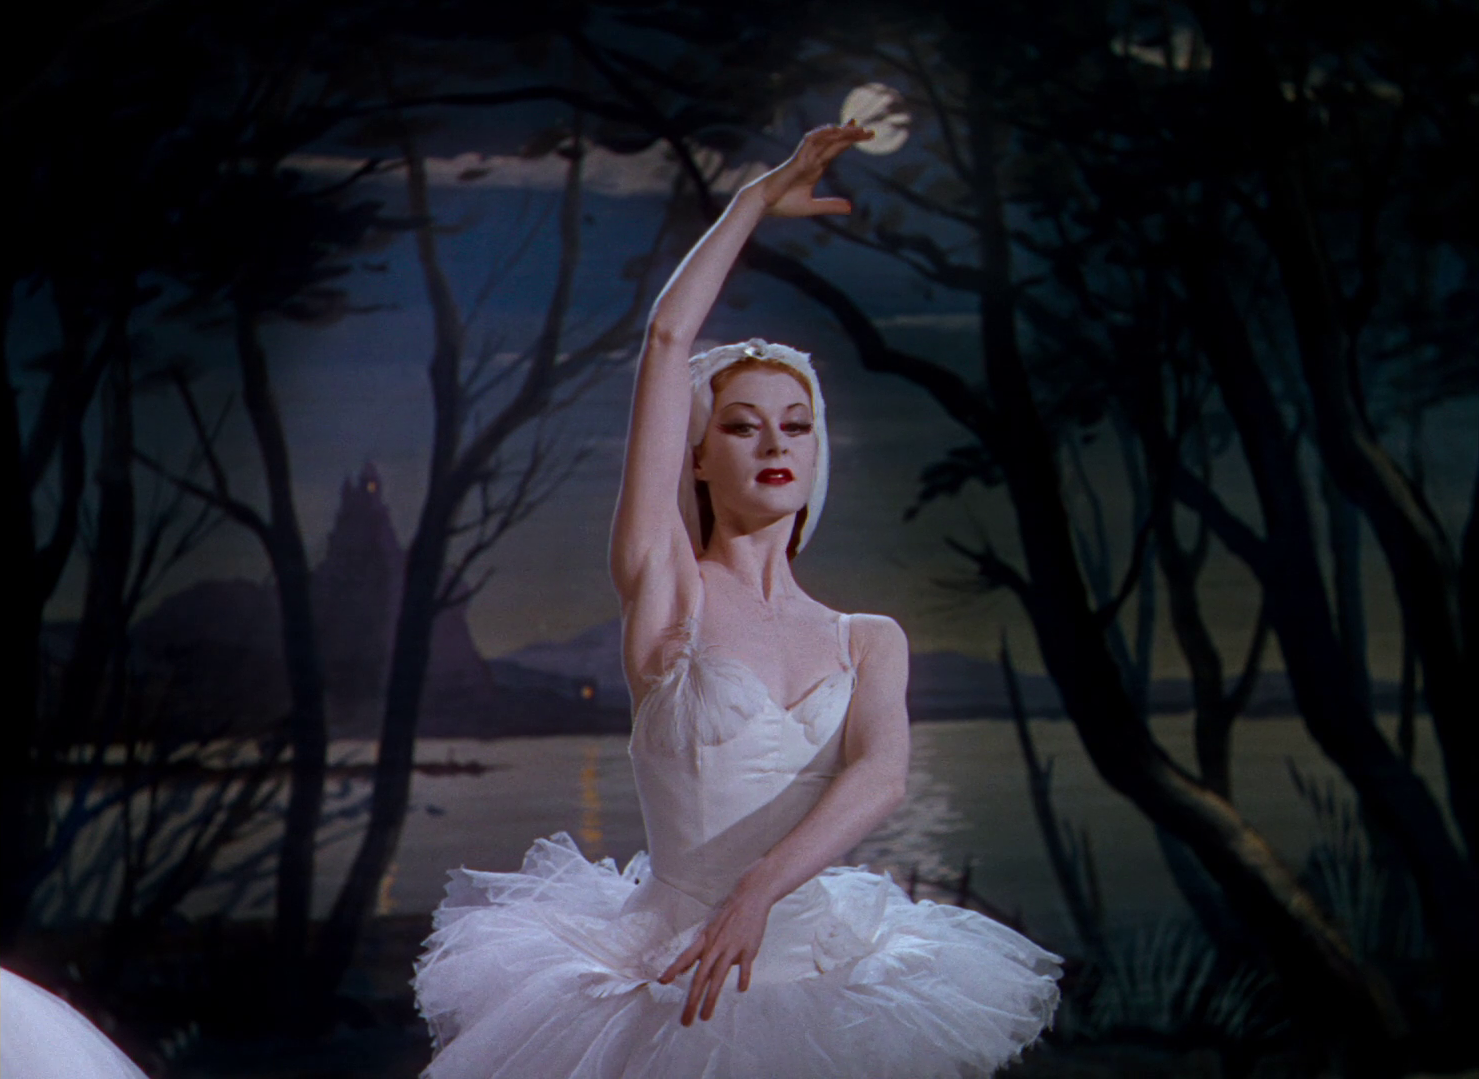 Part of what makes The Red Shoes so memorable is its aesthetic. The film uses colour like you've never seen before. The stunning ballet costumes and layers